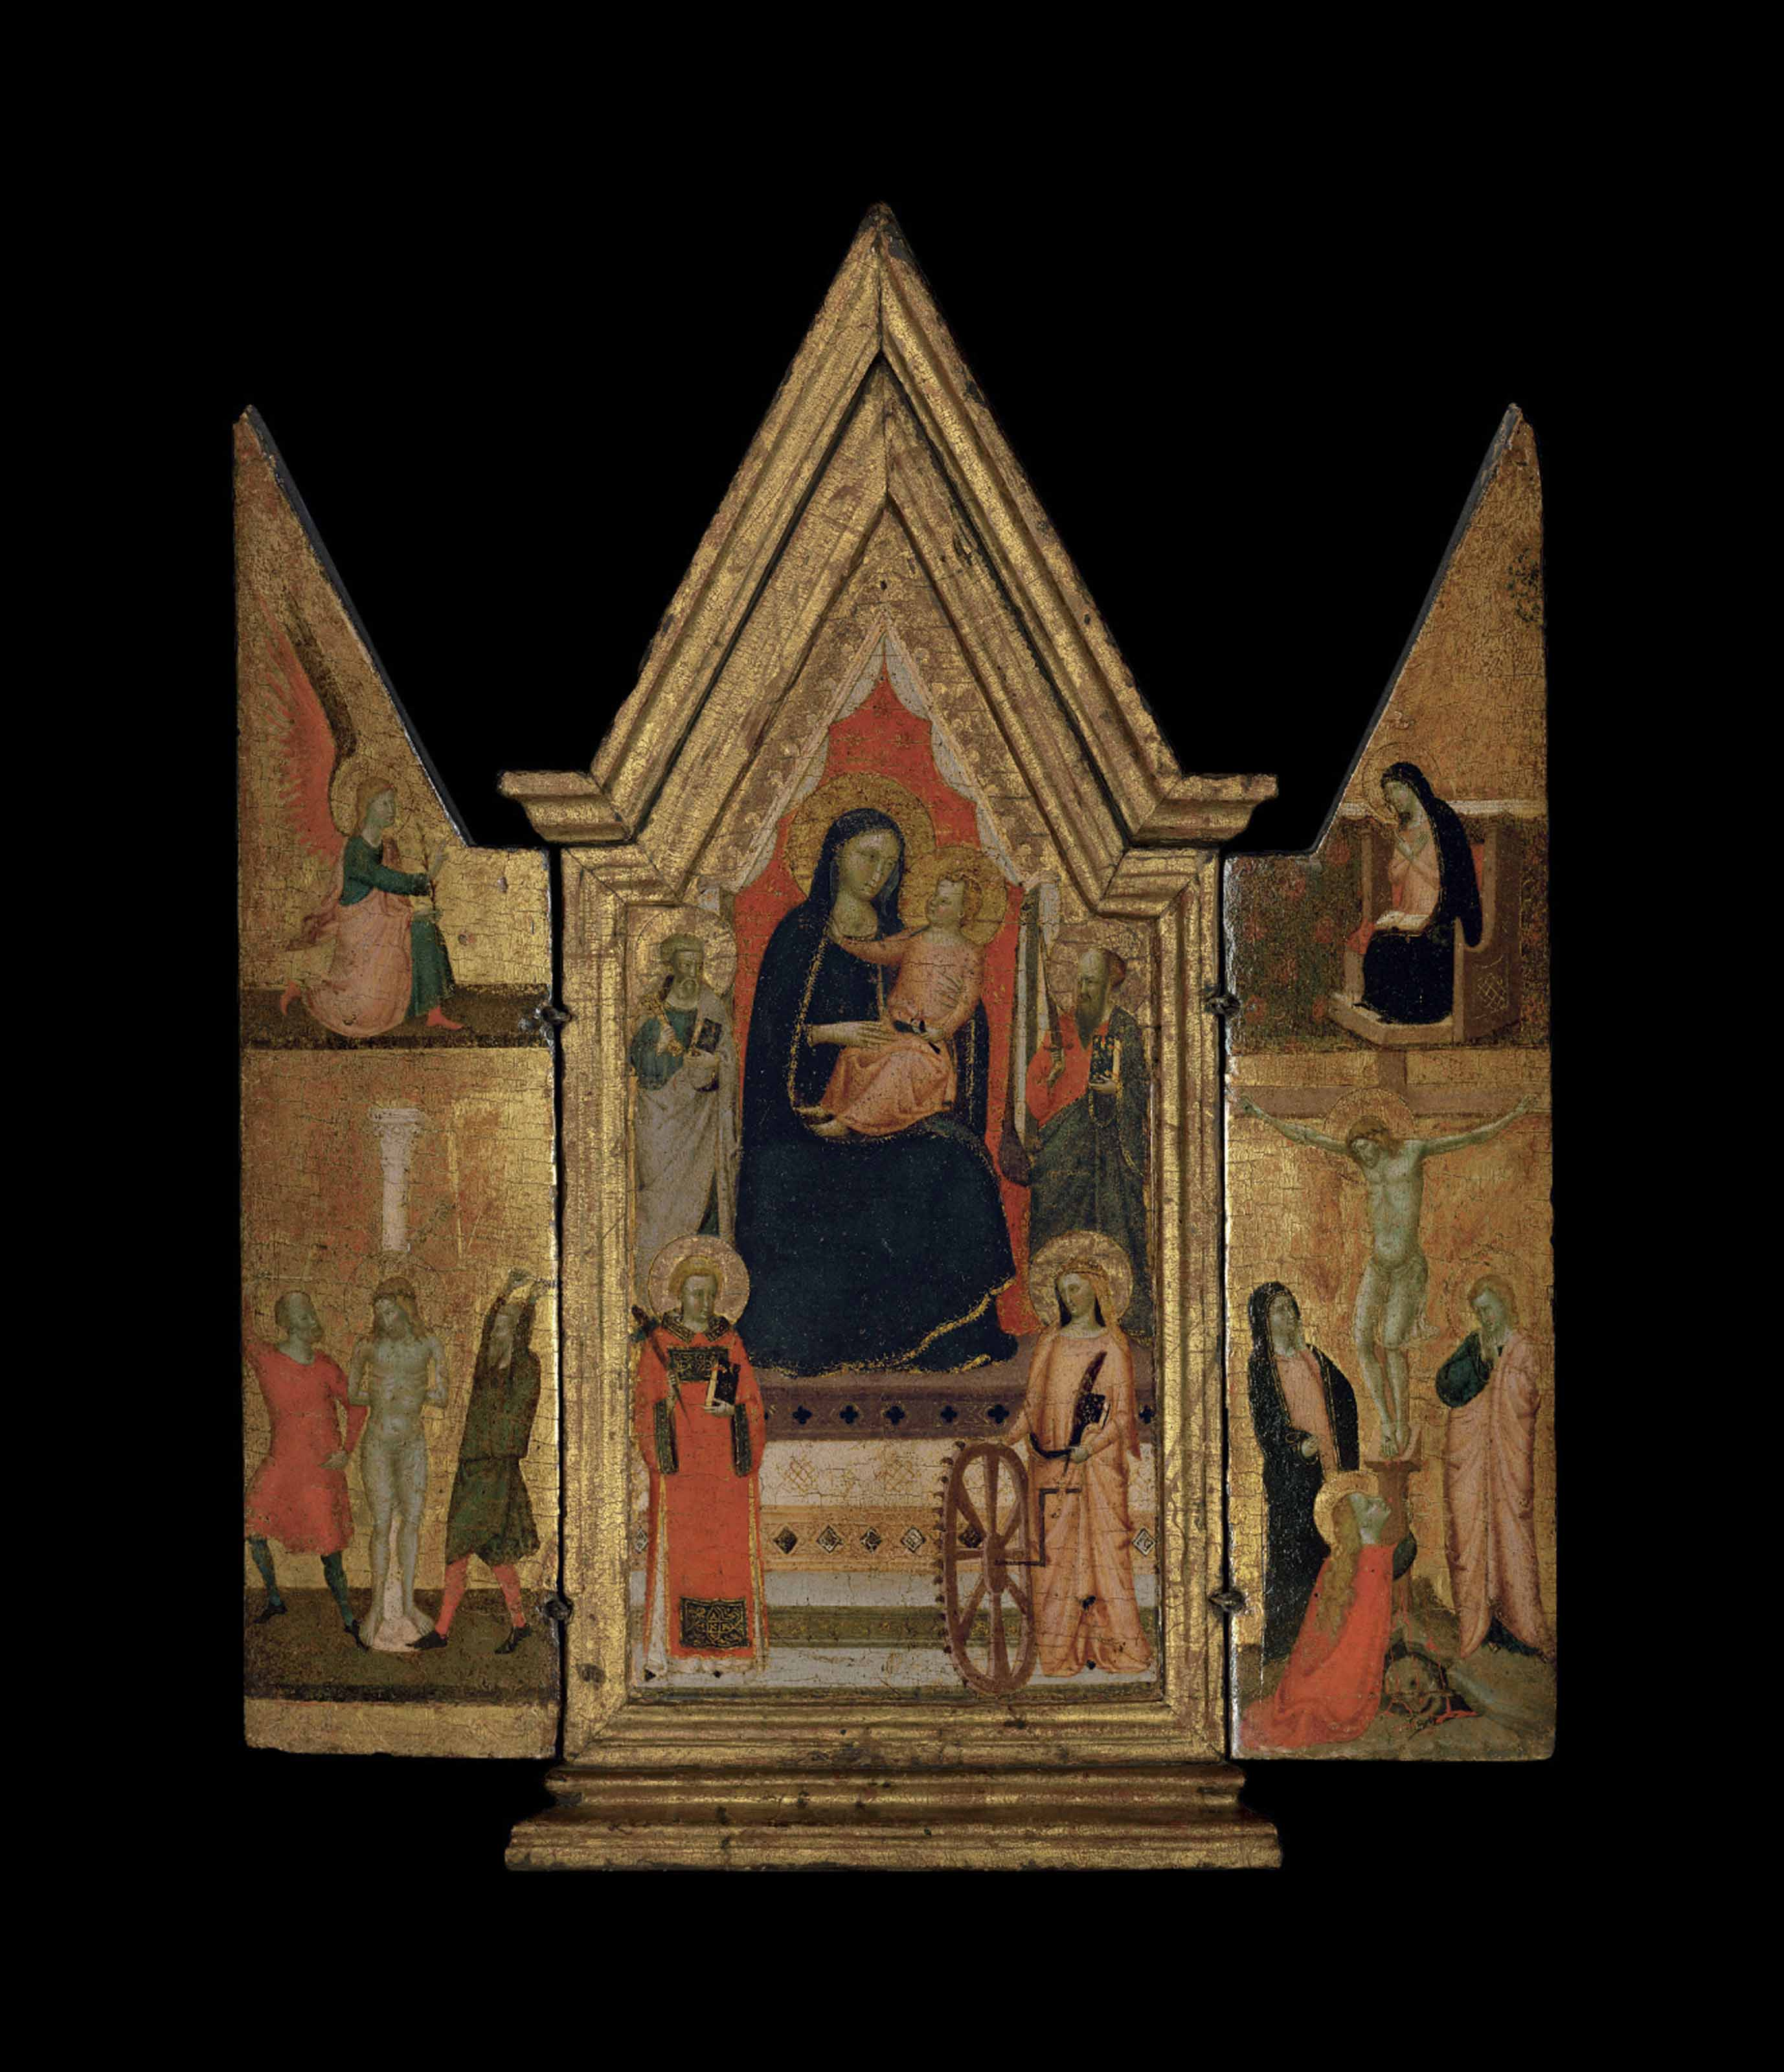 A triptych: central panel: The Madonna and Child Enthroned, with Saints Peter, Paul, Catherine of Alexandria and another Saint; the wings: The Flagellation of Christ; and The Crucifixion, with The Annunciation